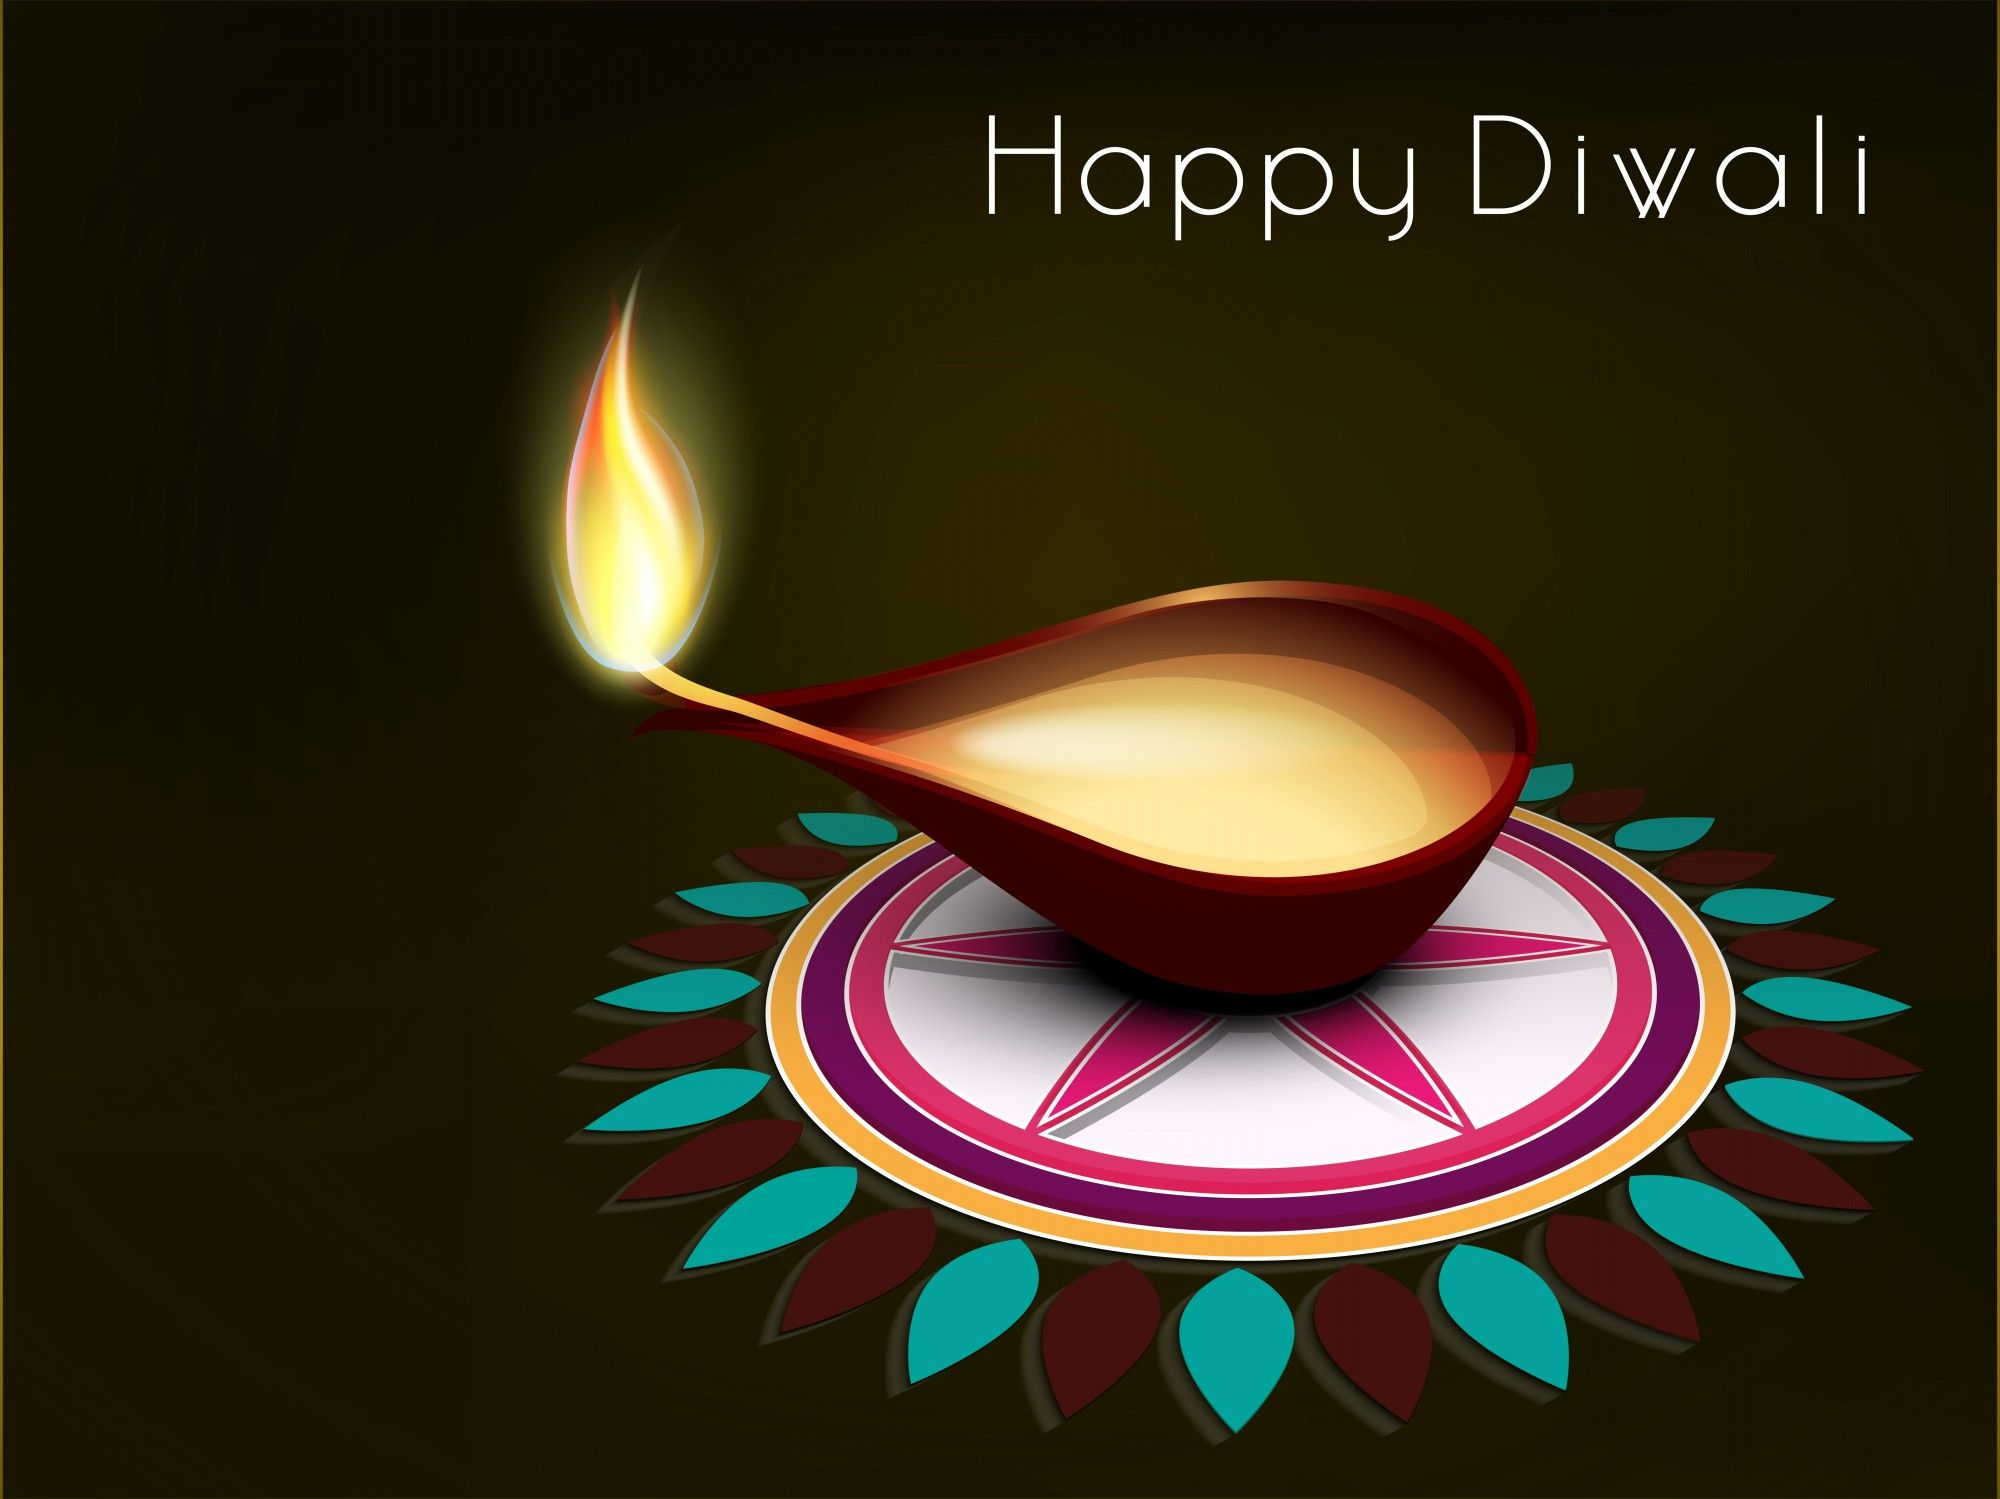 Cool Wallpaper Love Diwali - 1ab52379ad8faf0a33f9af8bfe62f305  2018_789146.jpg